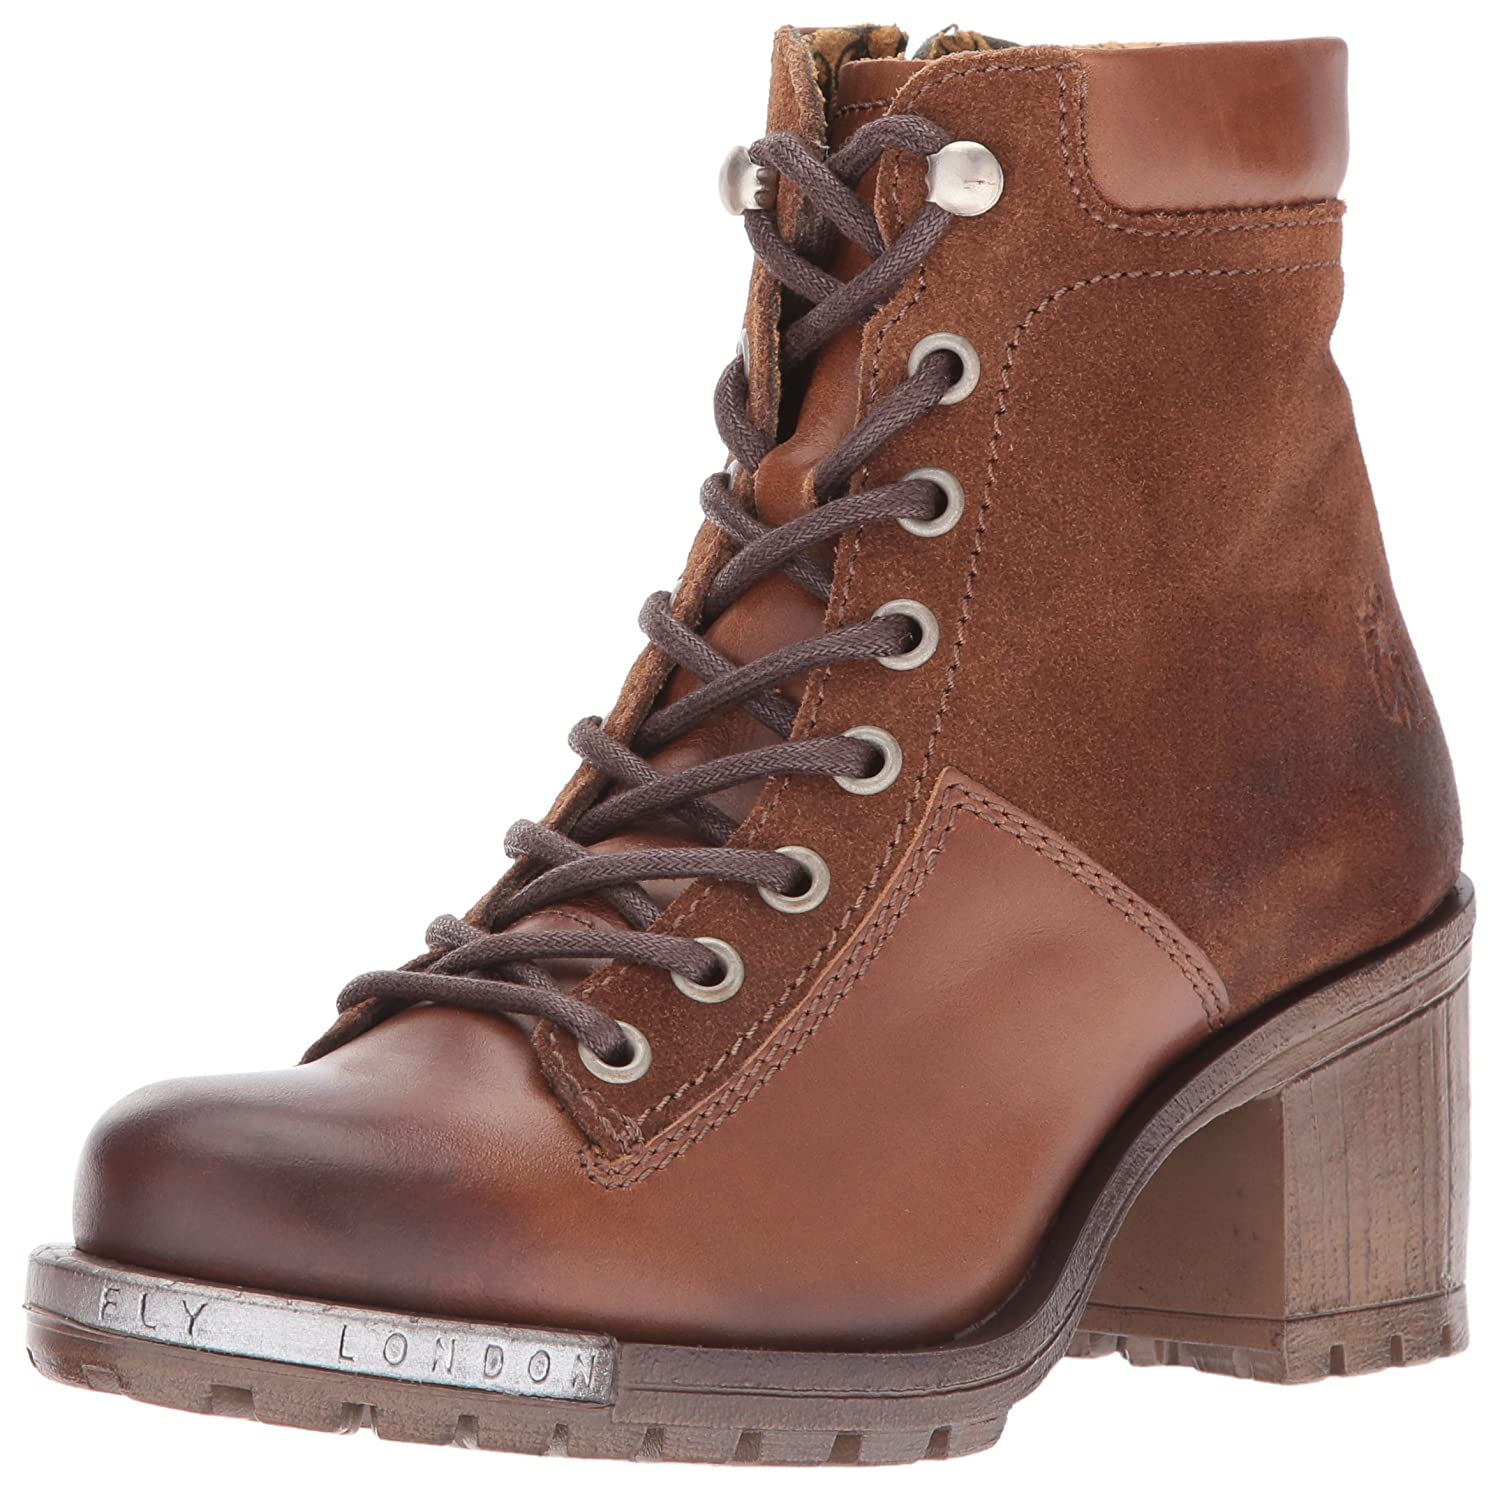 FLY London Women's Leal689fly Combat Boot B01DBXFU3O 37 EU/6.5-7 M US|Camel/Camel Oil Suede/Rug